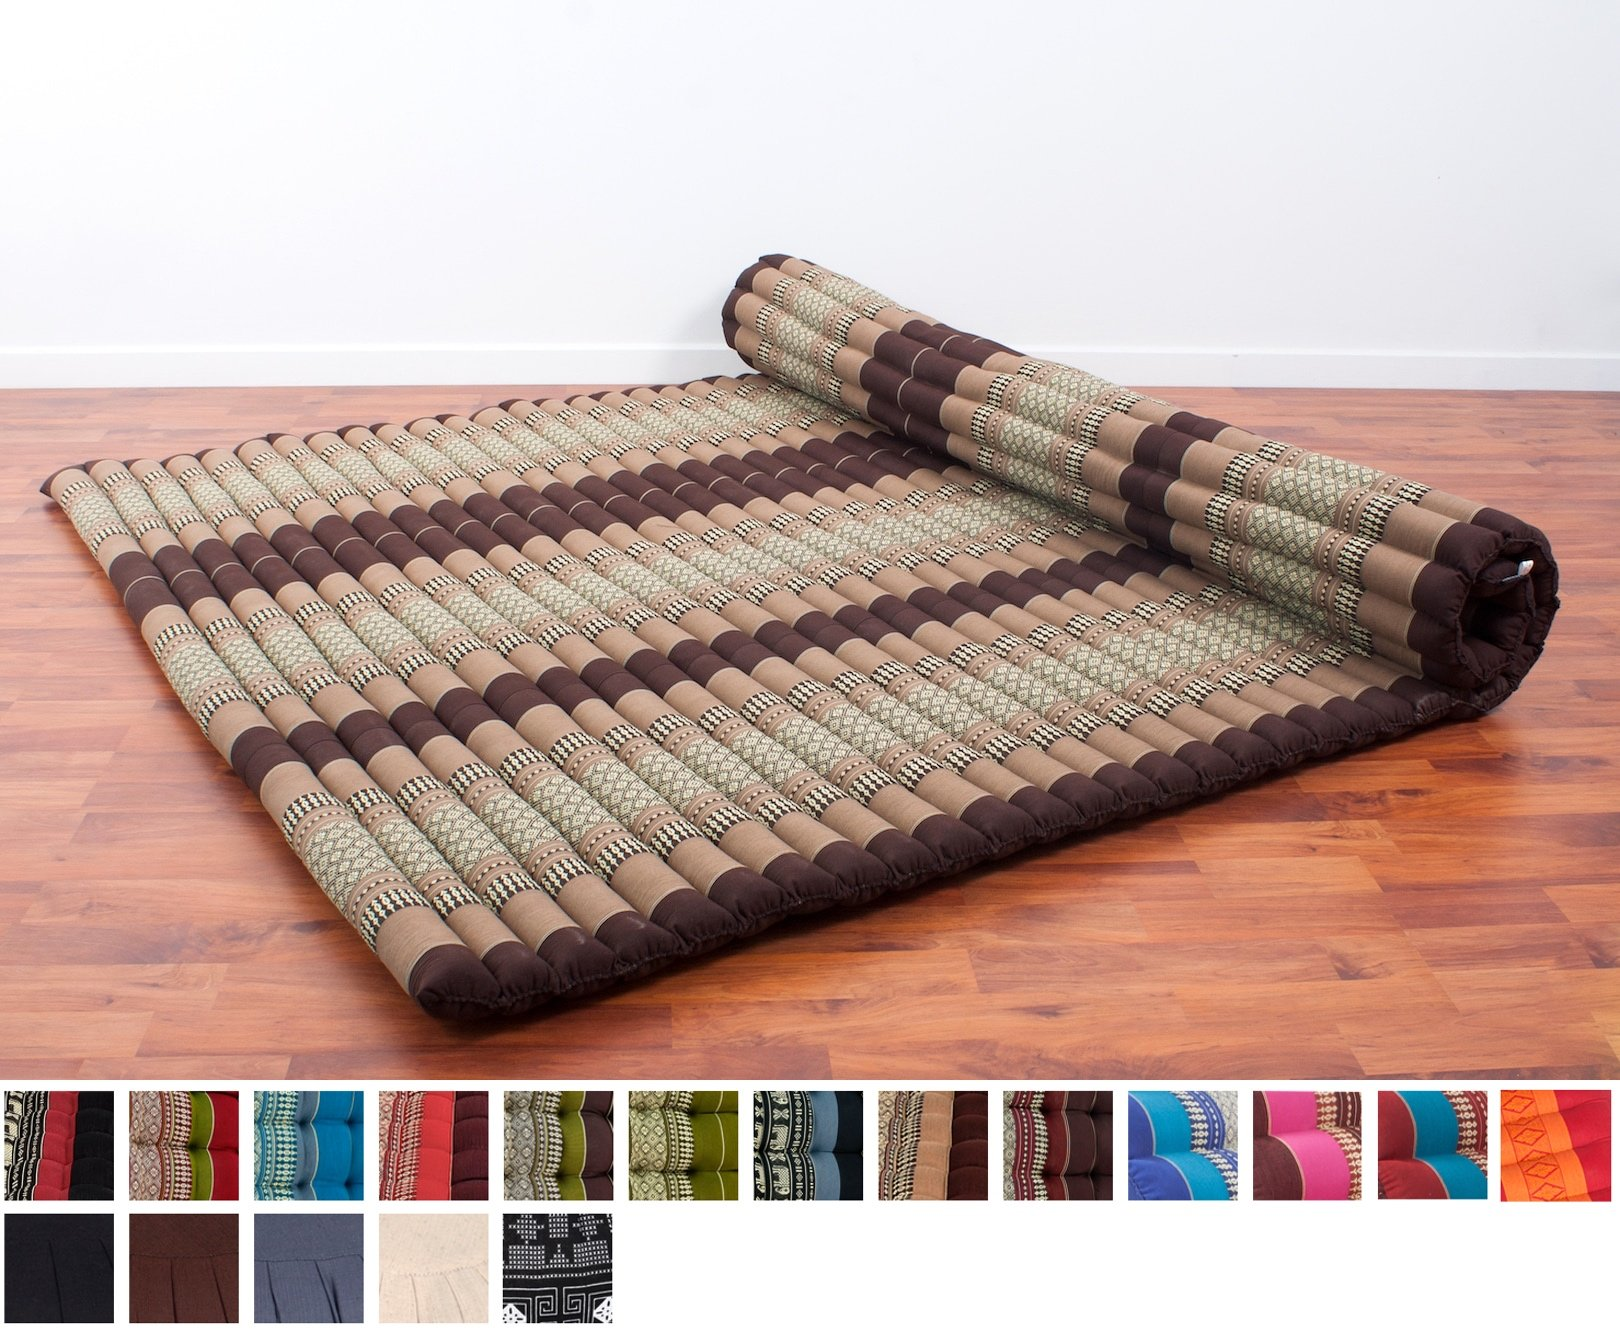 Leewadee Roll Up Thai Mattress XXL, 79x59x2 inches, Kapok Fabric, Brown, Premium Double Stitched by Leewadee